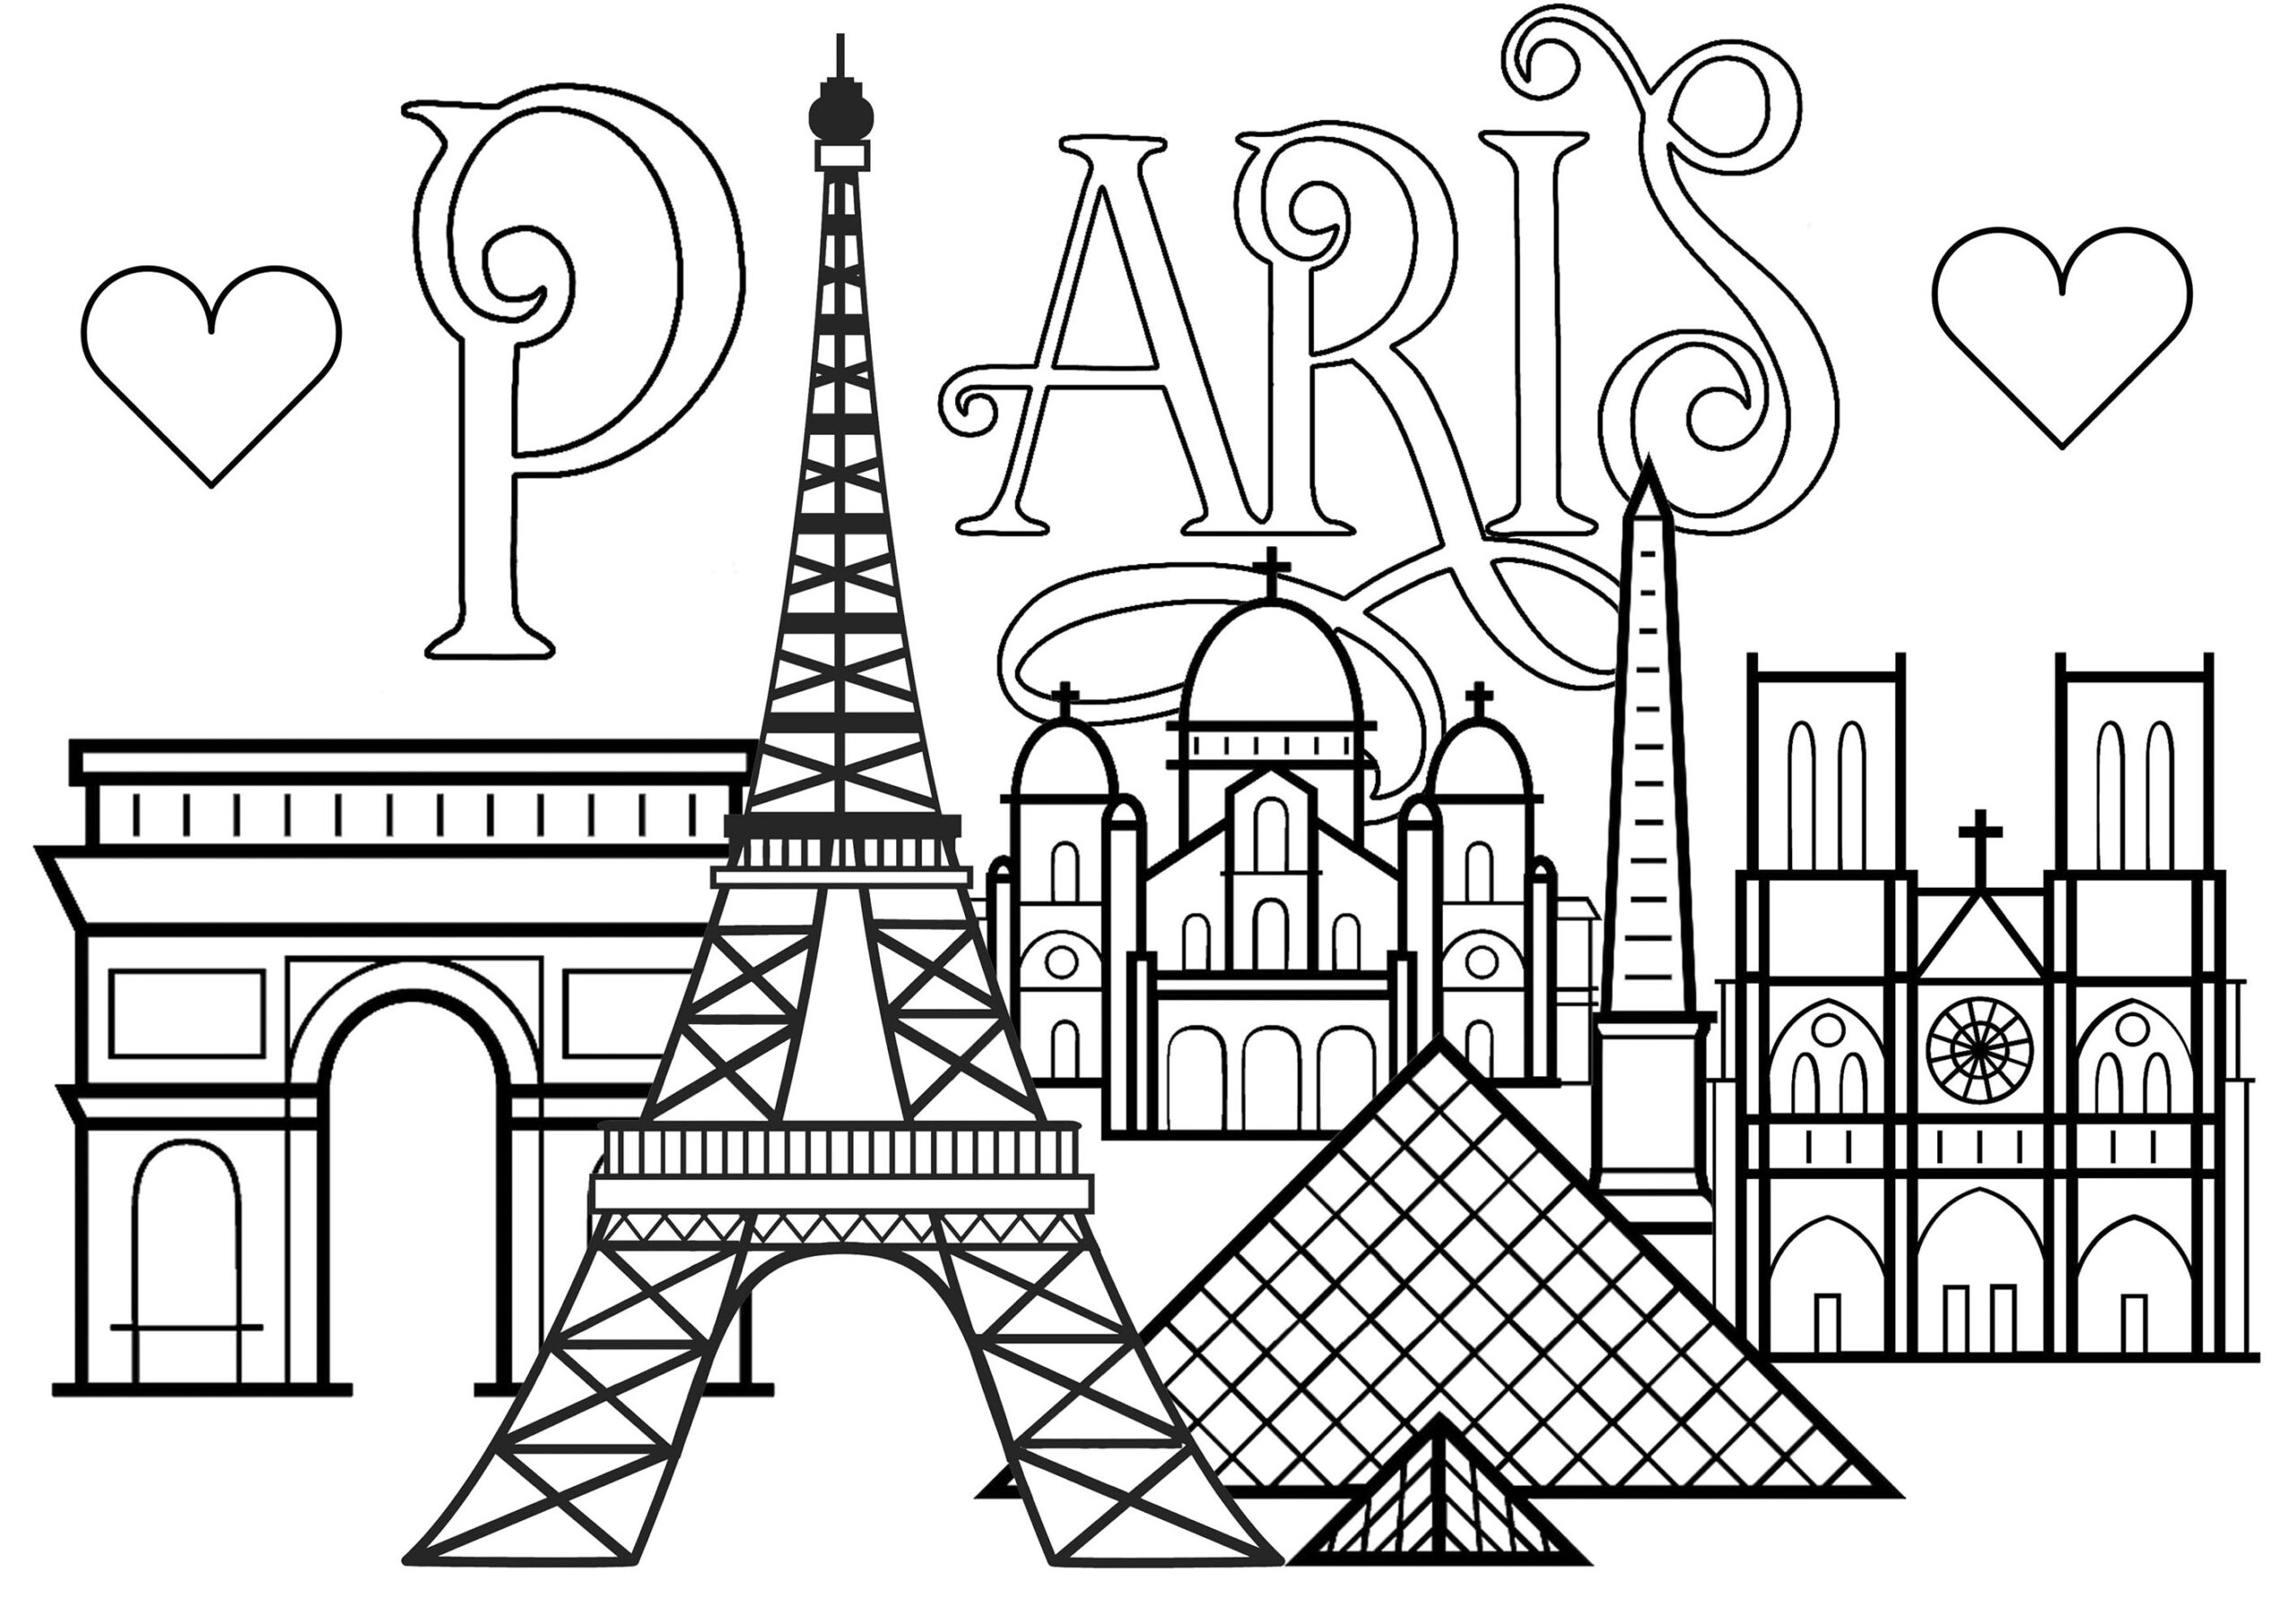 paris famous monuments and text adult coloring animal poppers fantasy glitter glue crafts coloring pages Paris Coloring Page